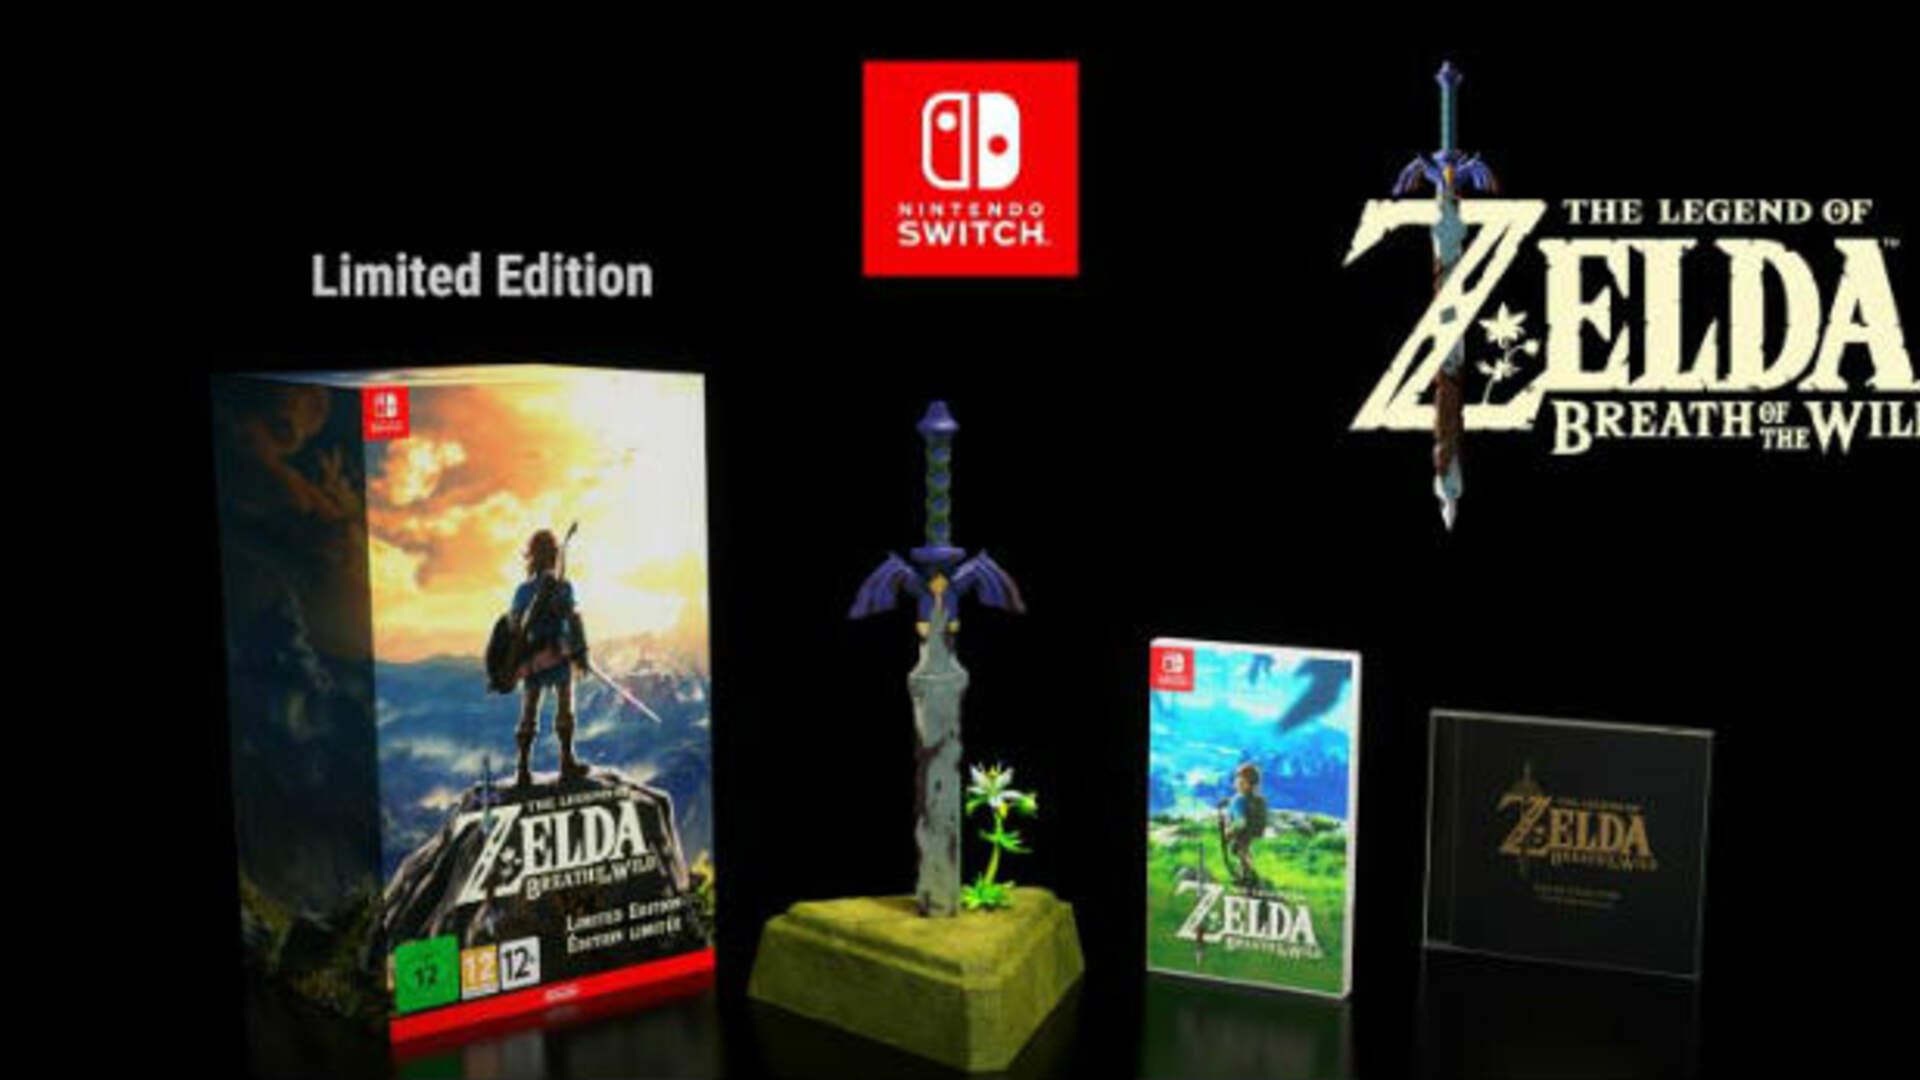 Eiji Aonuma Unboxes The Legend Of Zelda Breath Of The Wild Talks